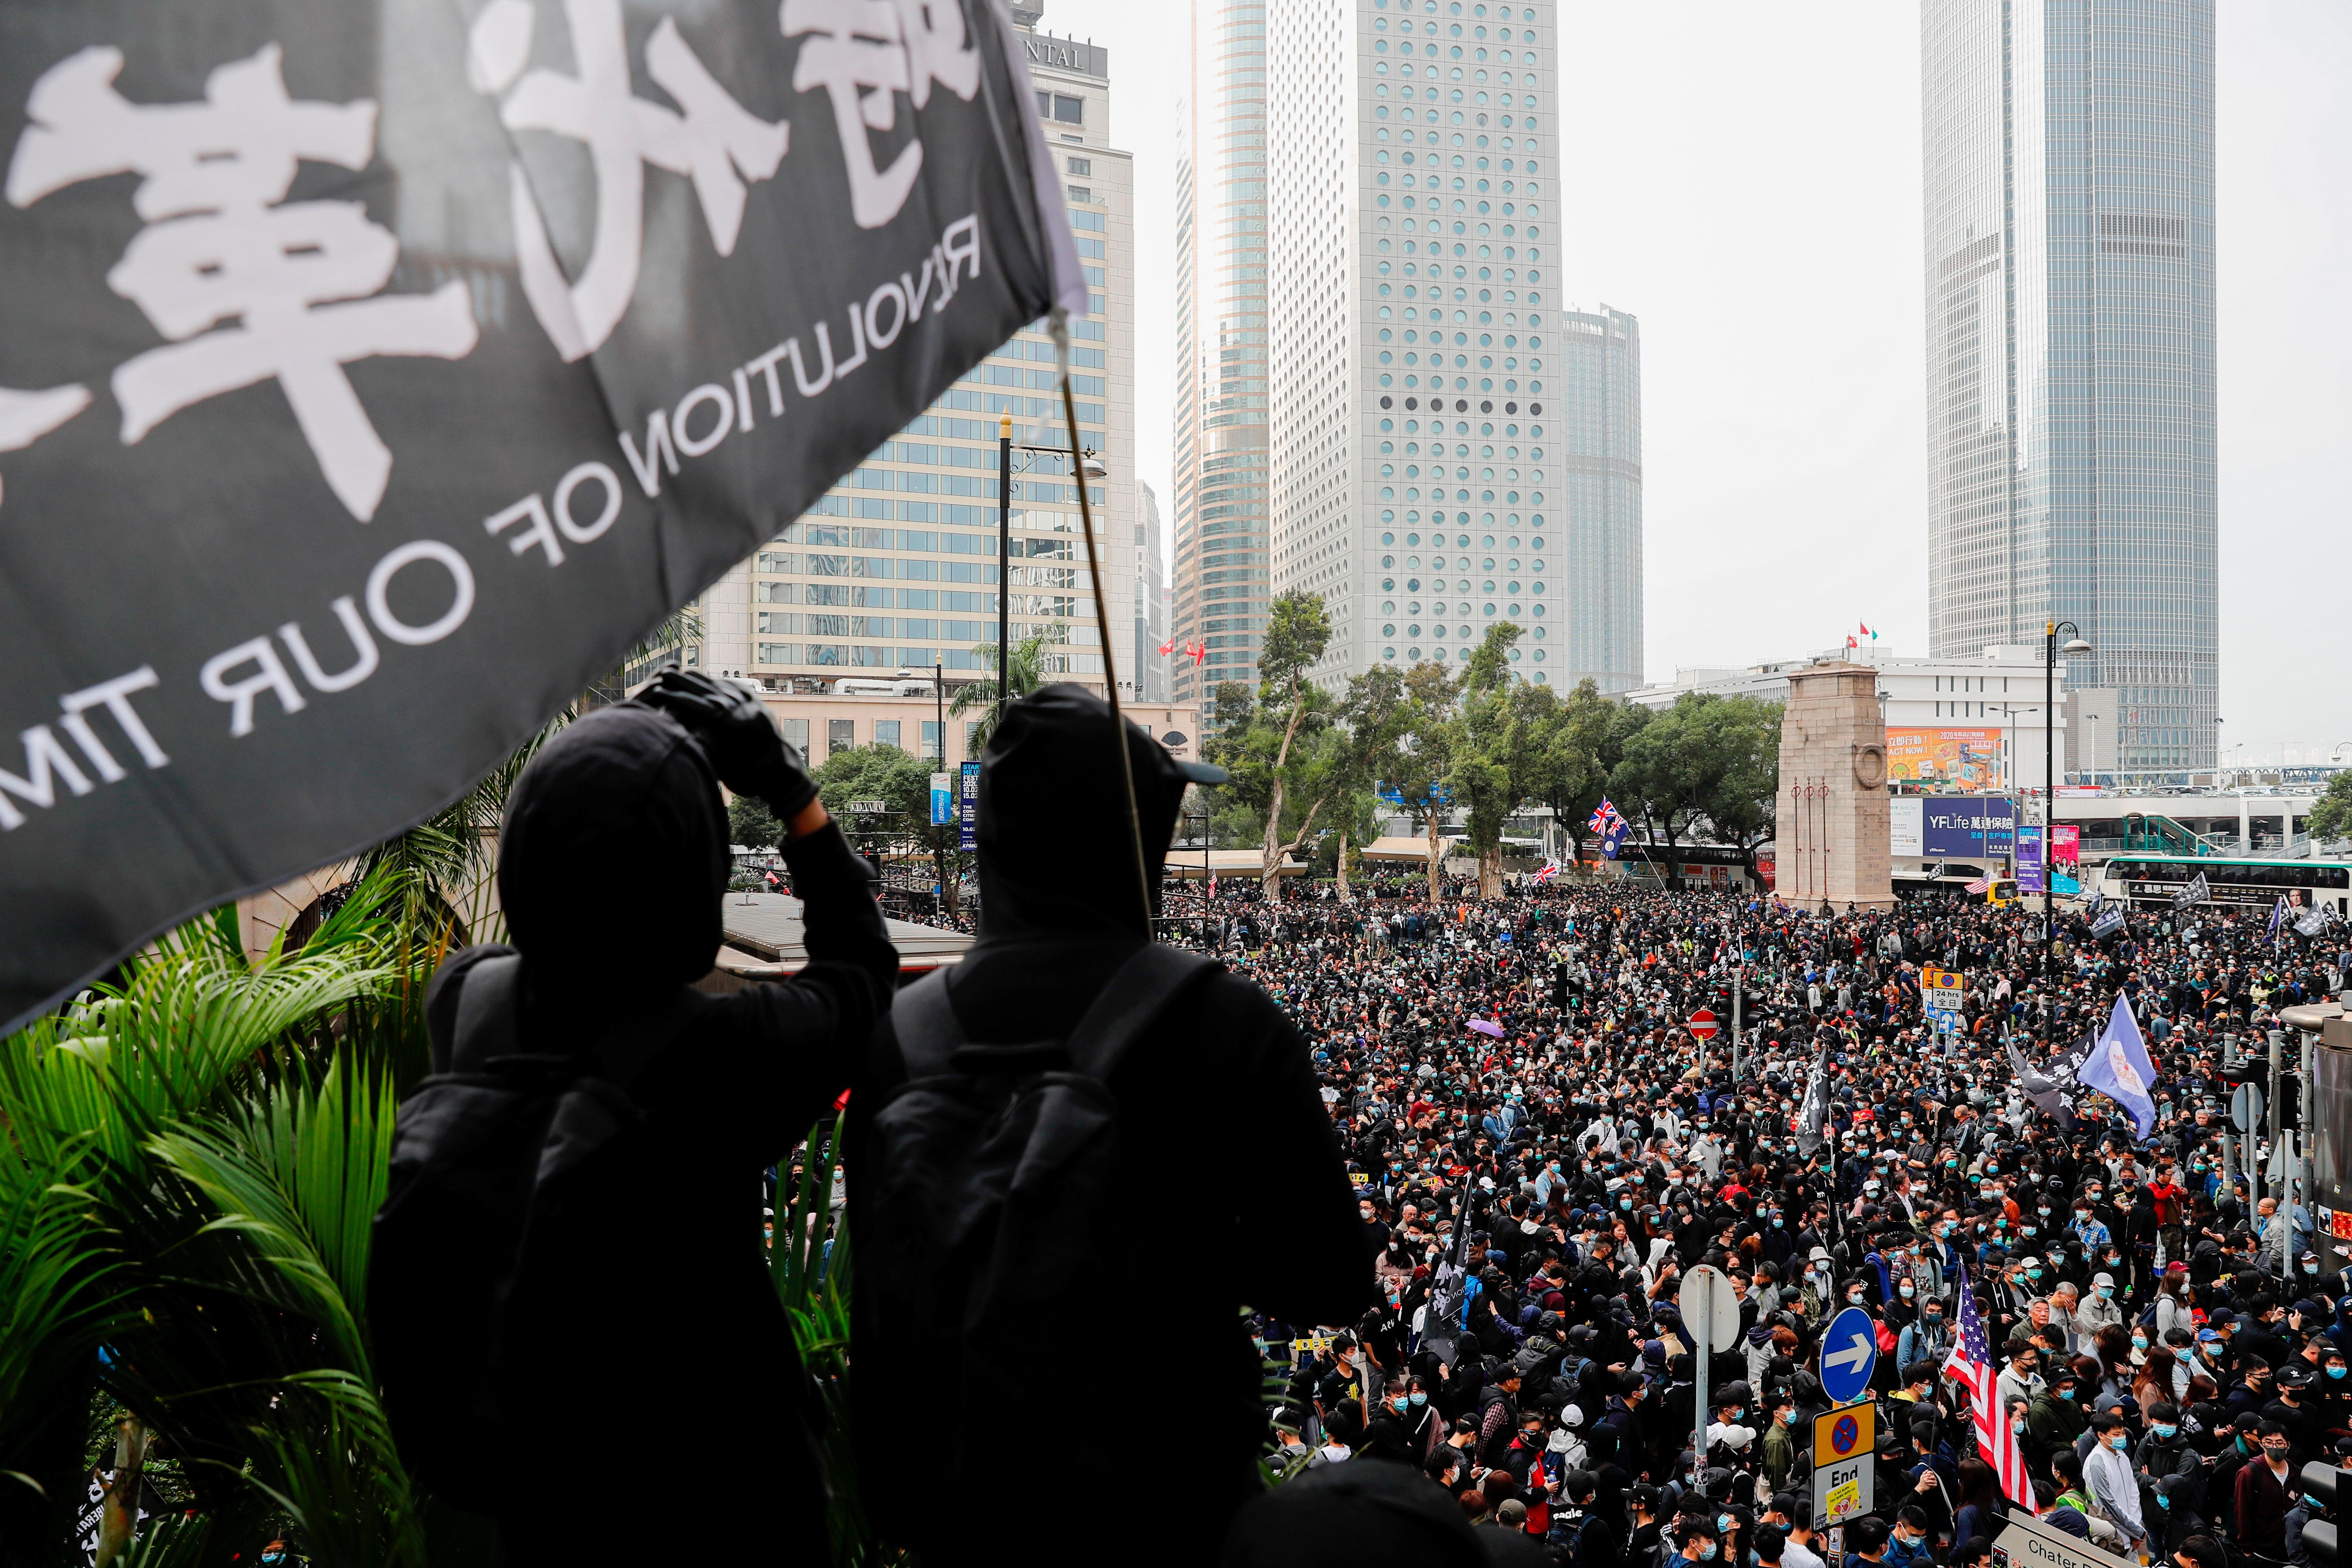 Police arrest organizer of Hong Kong protest after rally turns violent